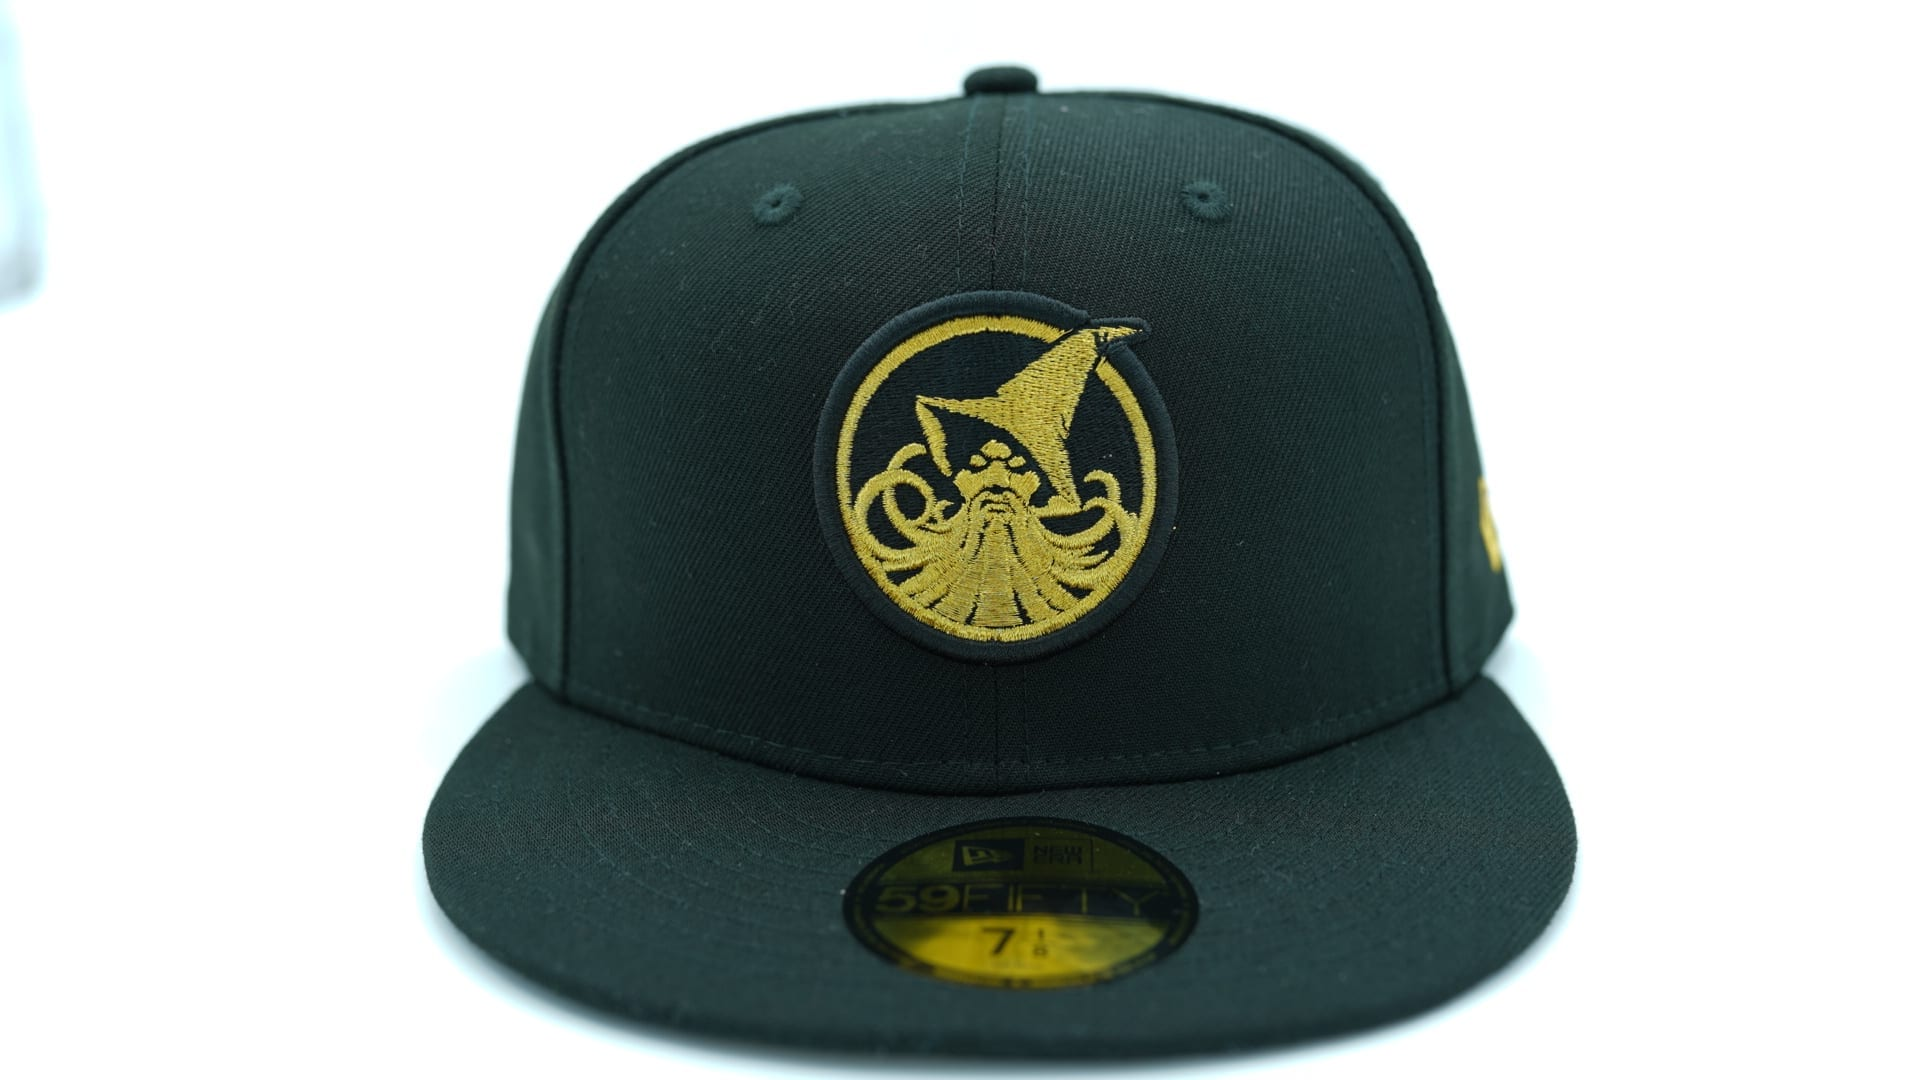 Rancho Cucamonga Quakes Retro 59Fifty Fitted Cap NEW ERA MiLB